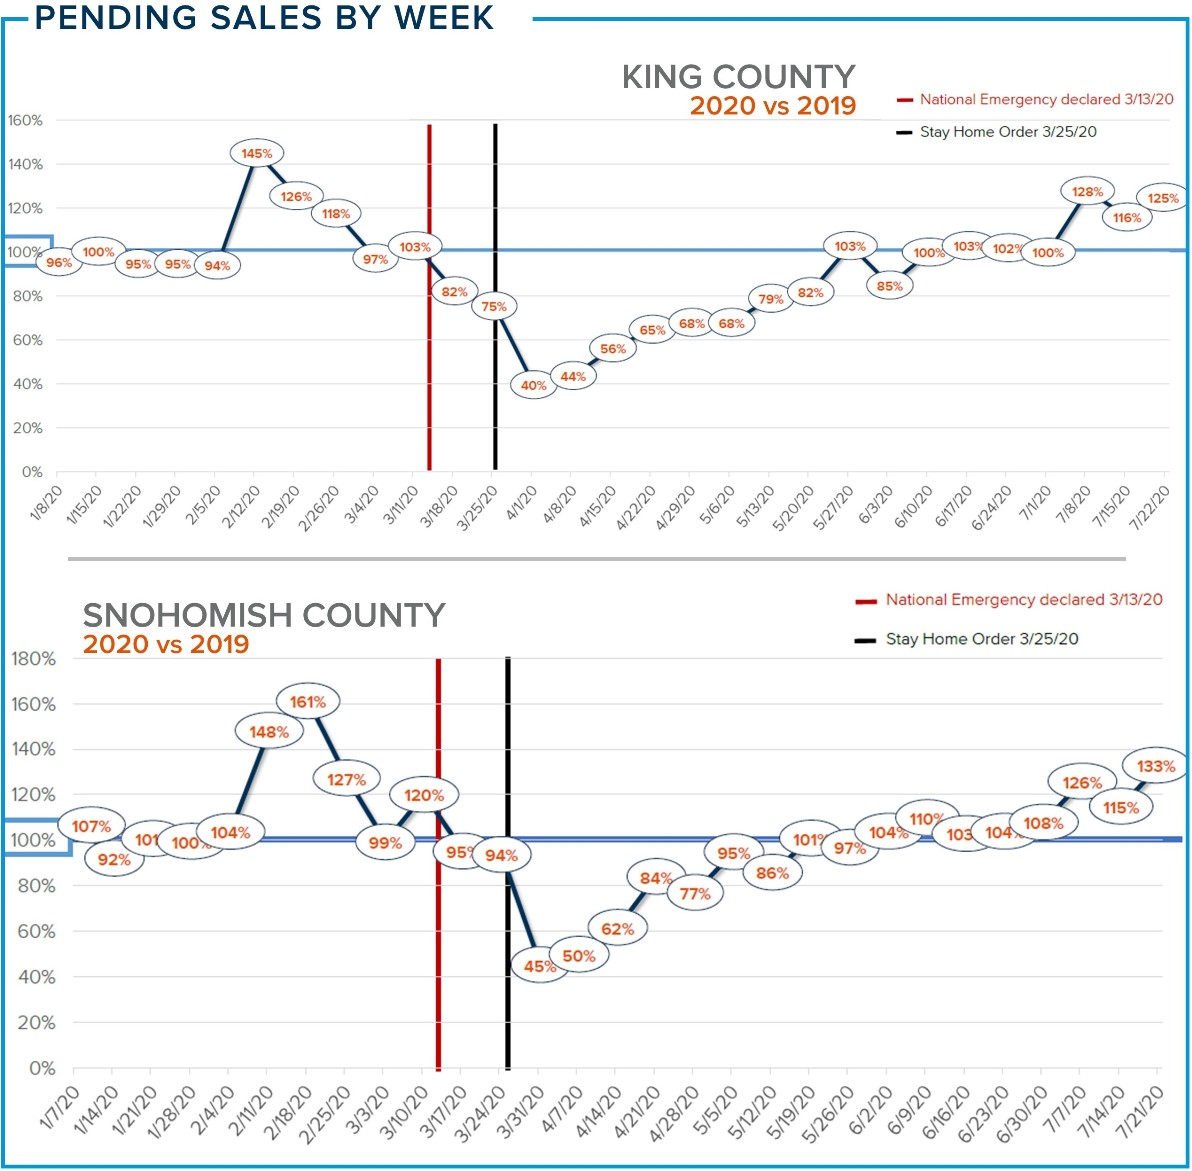 Pending Sales by Week for King County & Snohomish County